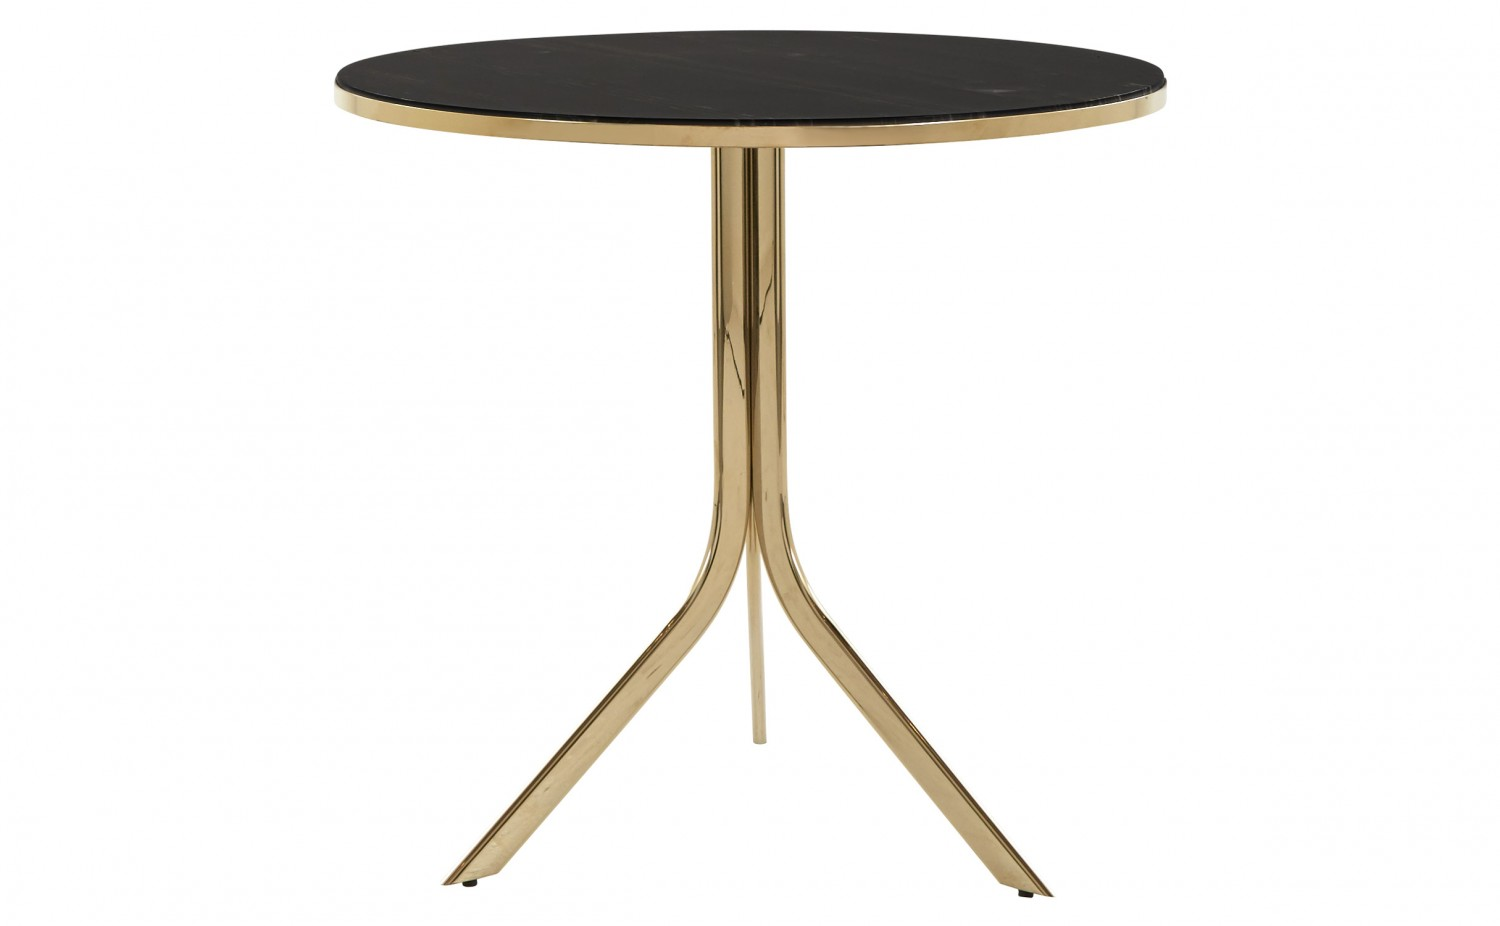 lake bistro table jayson home marble accent loading zoom tall acrylic gold decor retro lounge furniture yellow accents cherry wood hampton bay patio cushions stand world market